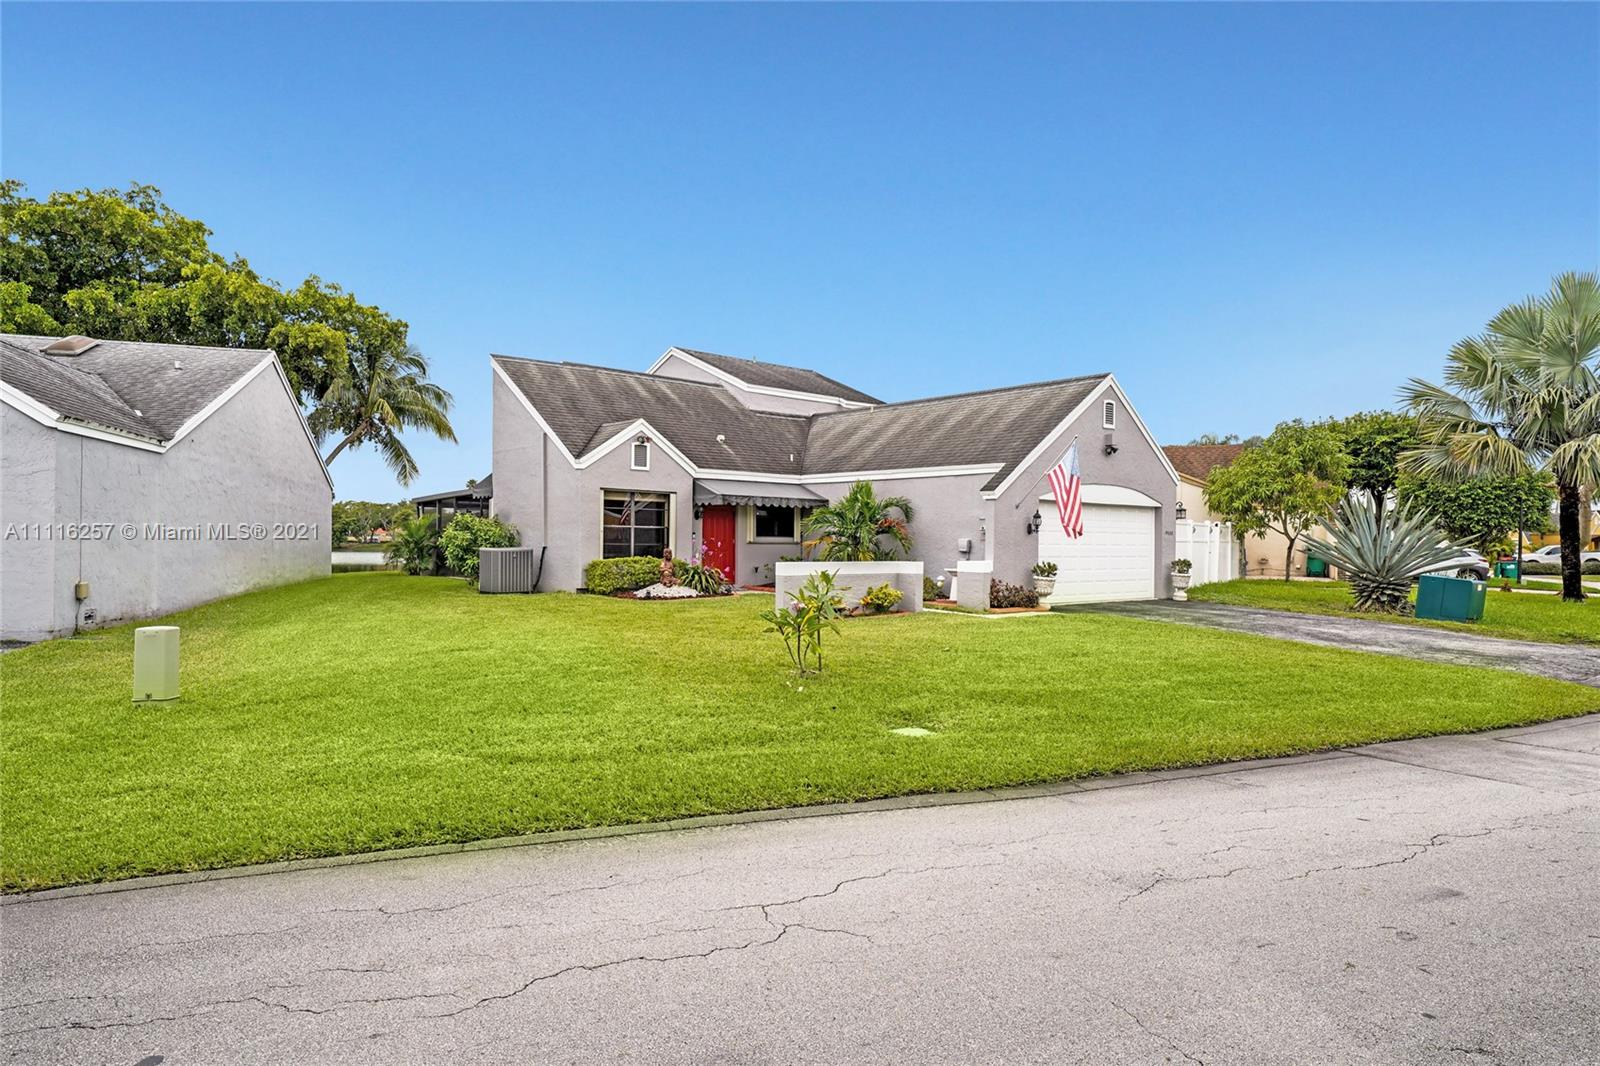 Single Family Home,For Sale,19038 NW 80th Ct, Hialeah, Florida 33015,Brickell,realty,broker,condos near me